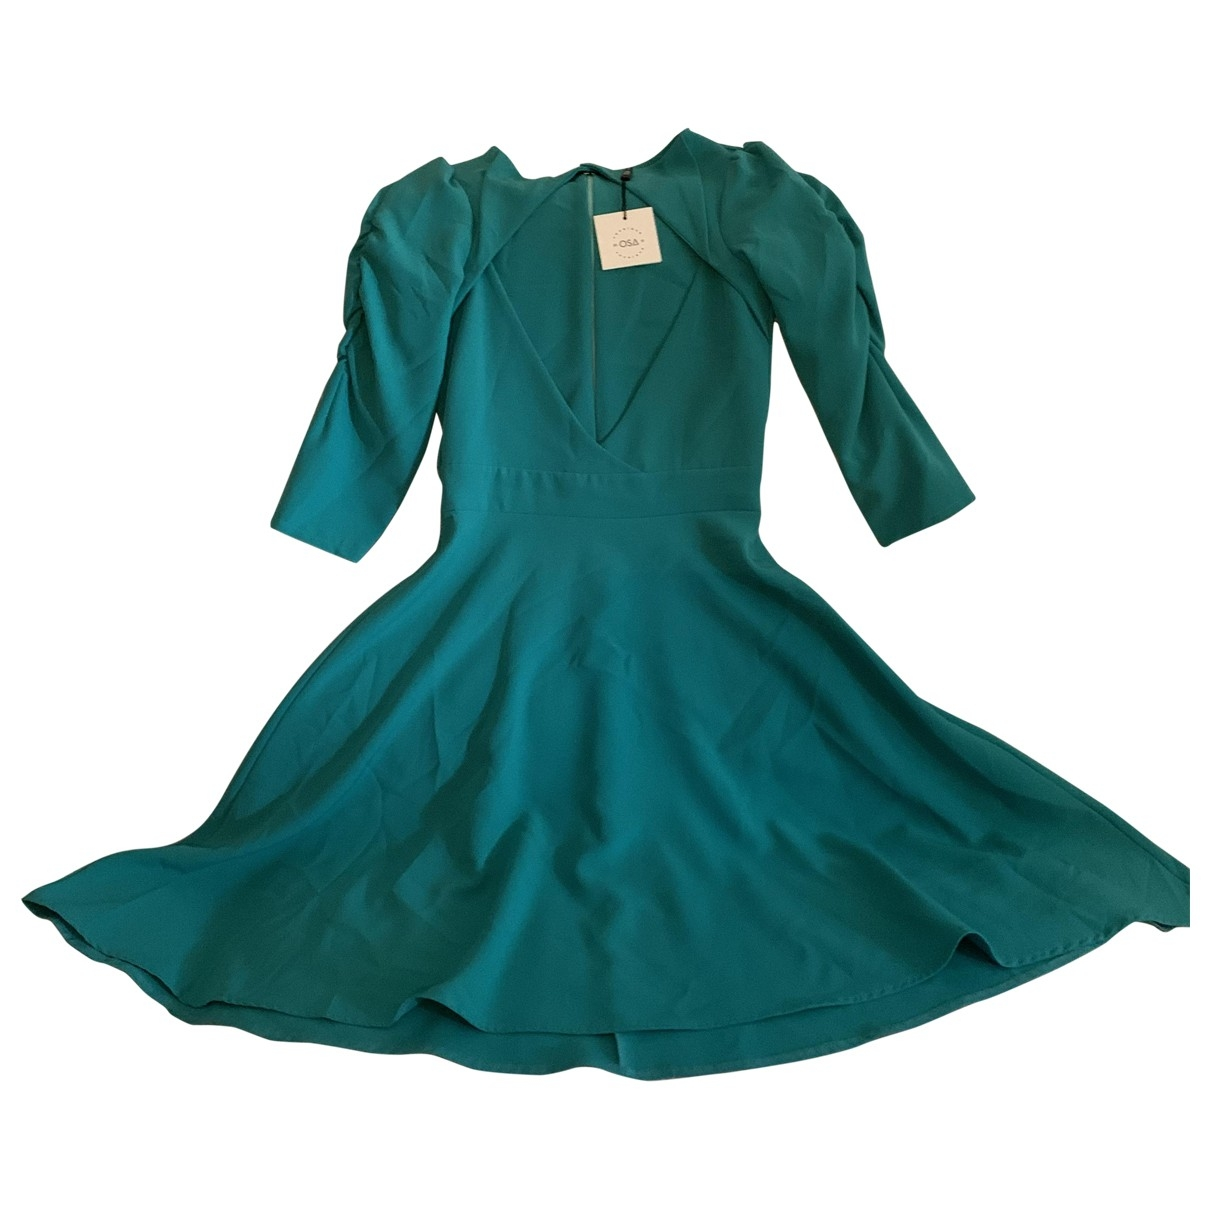 Non Signé / Unsigned \N Green dress for Women S International